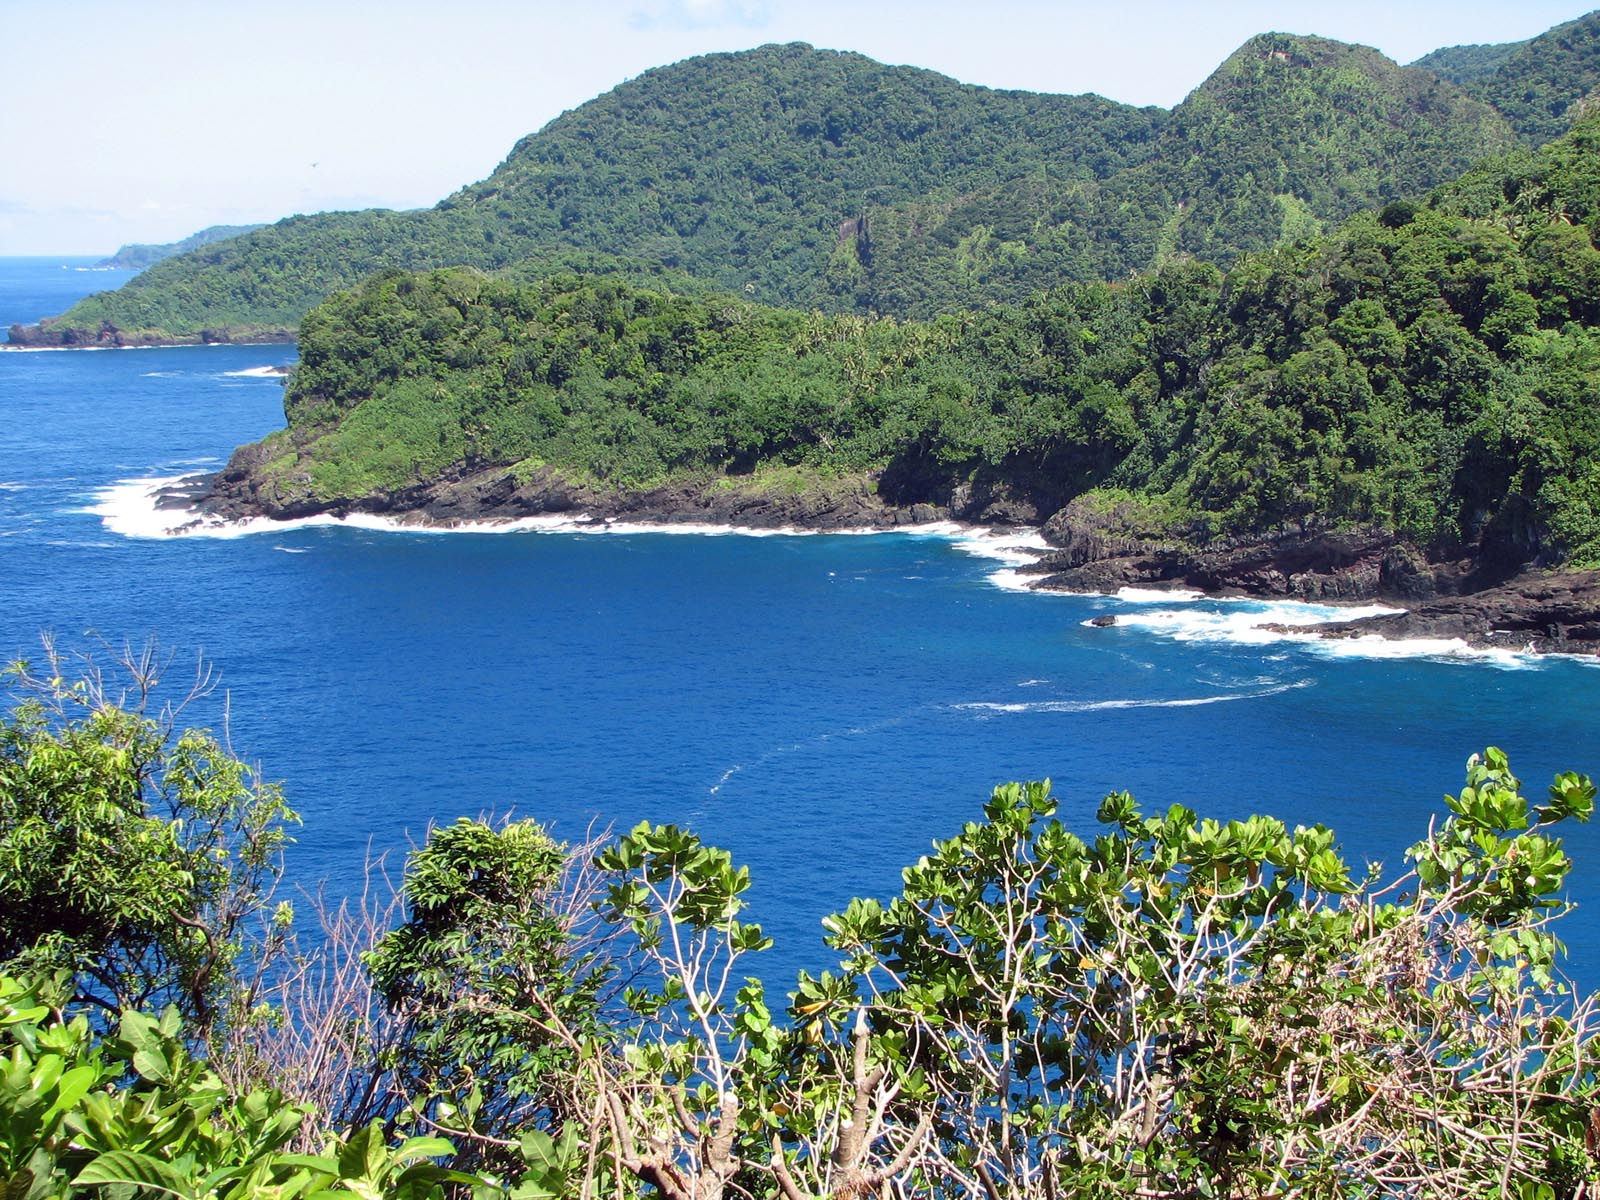 Tutuila Amalu Bay, National Park of American Samoa | Photo Credit: NPS